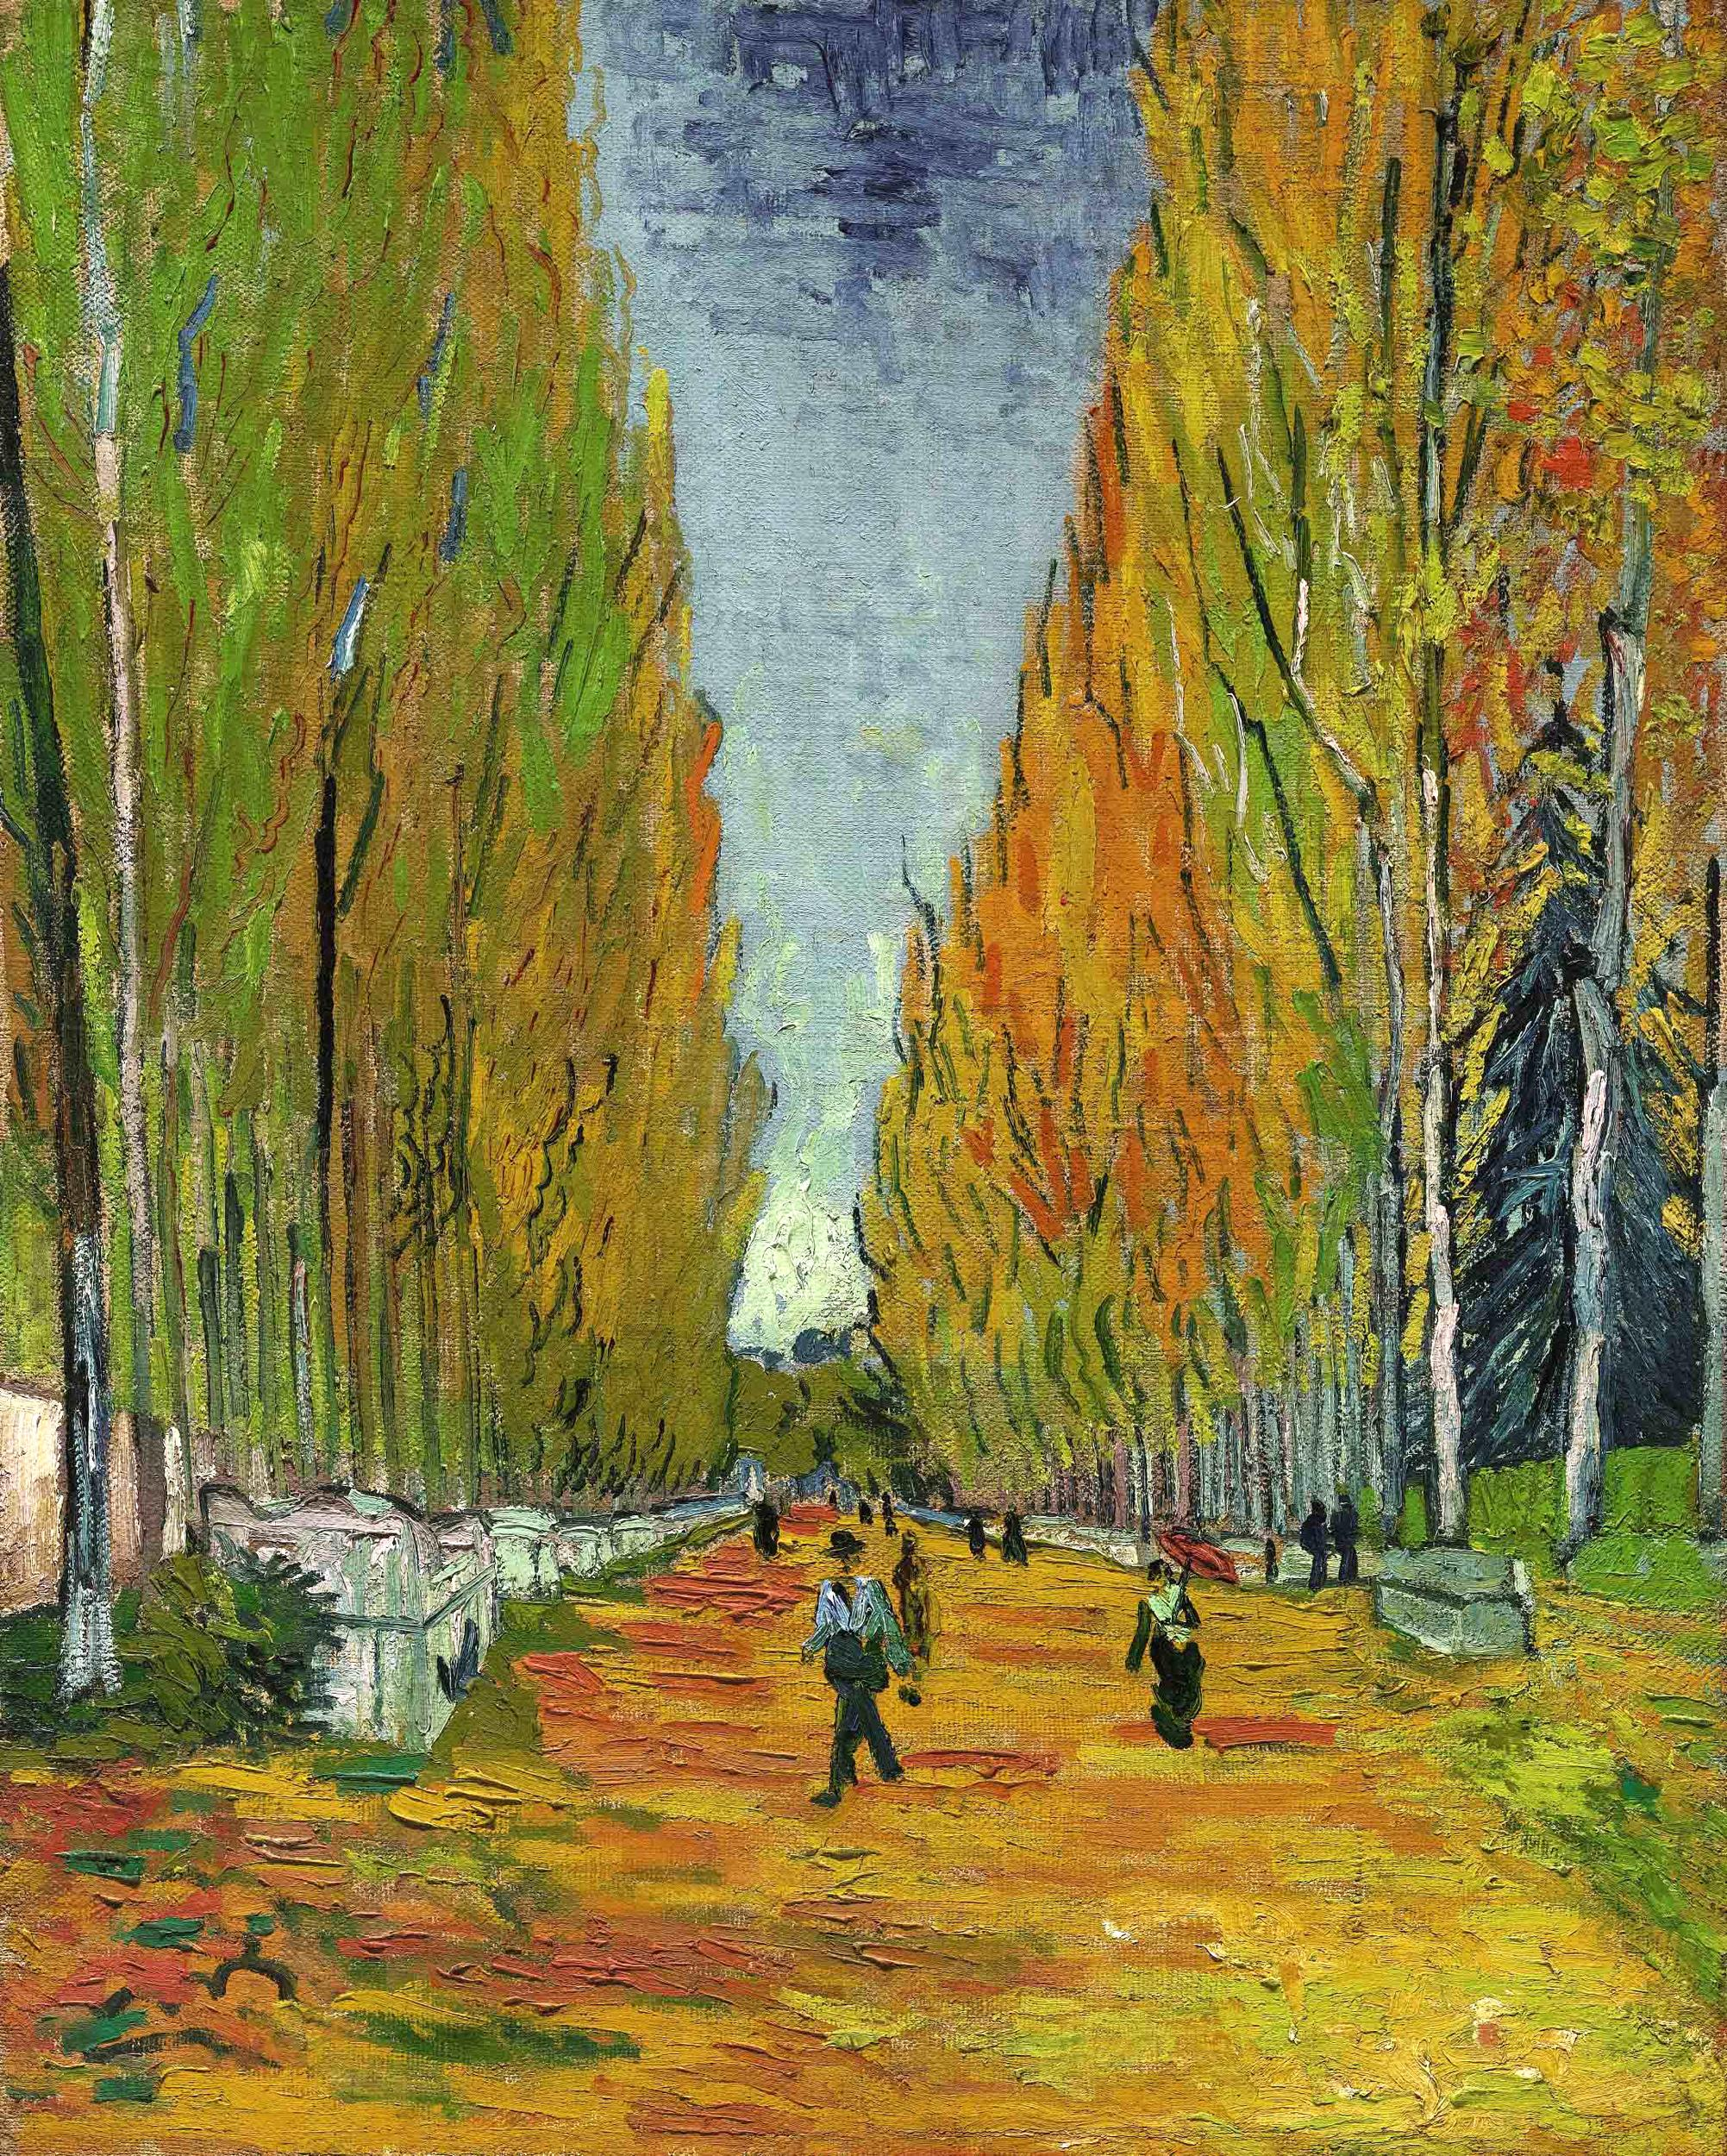 Van Gogh sells for $66m: What it says about the market